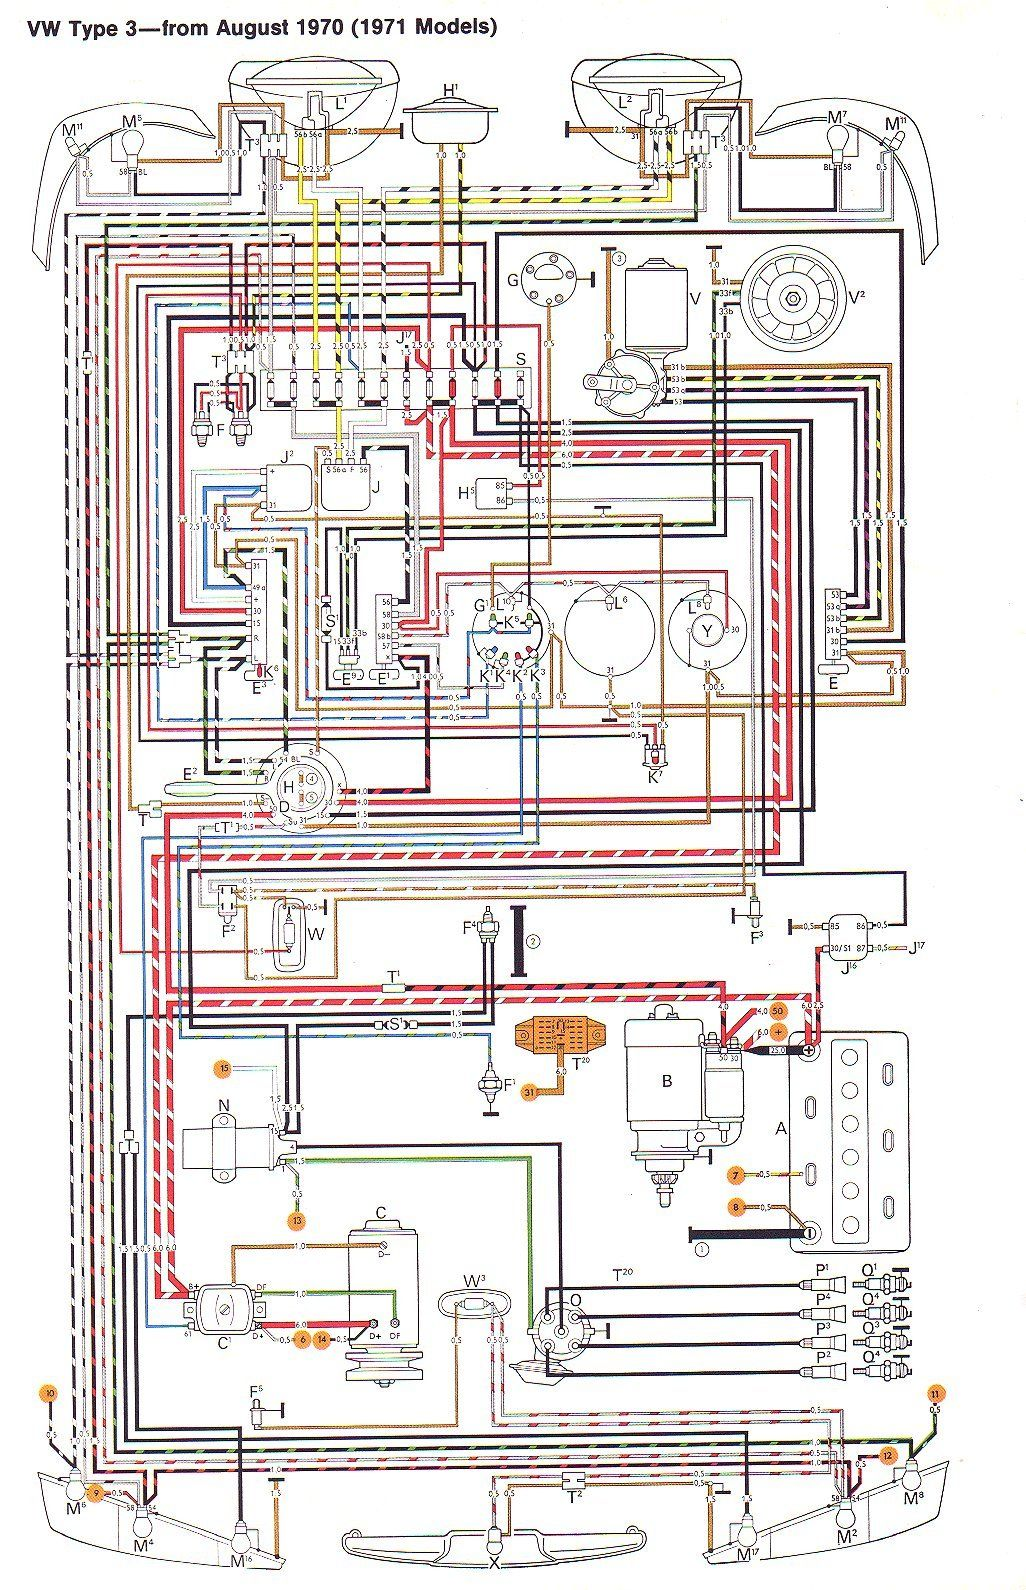 hight resolution of 71 vw t3 wiring diagram van interior diagram type 3 volkswagen vintage